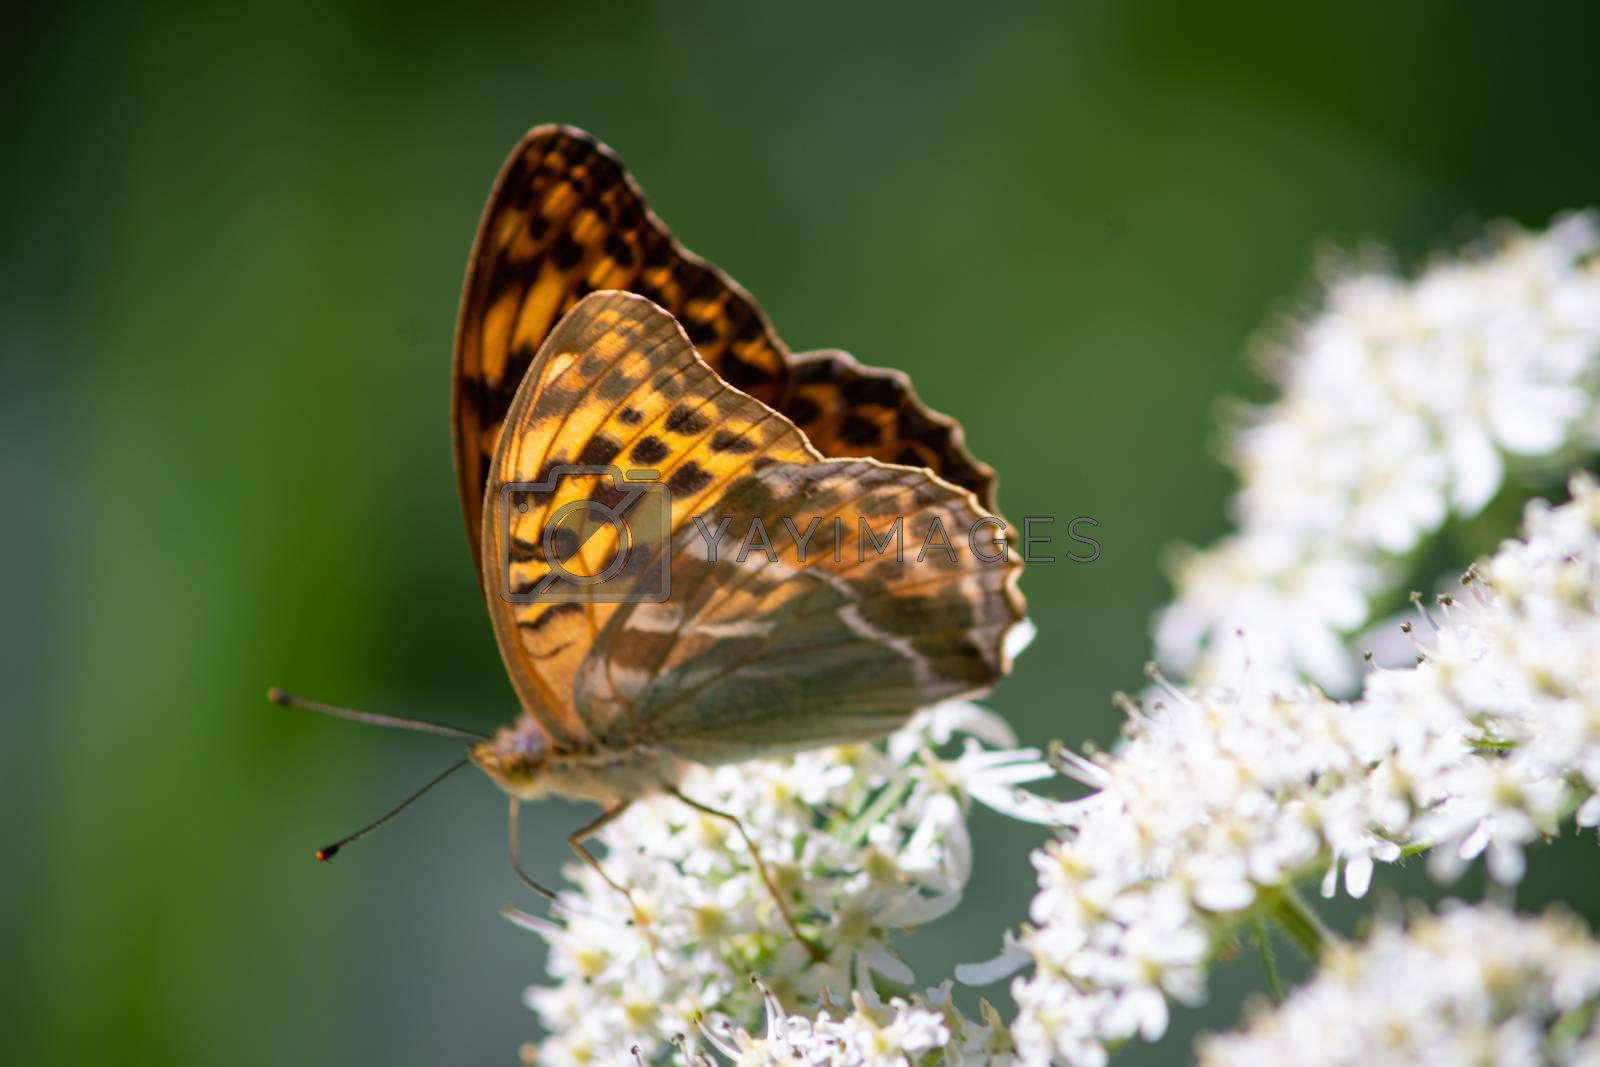 Beautiful summer butterflies on flowers and leaves by mindscapephotos